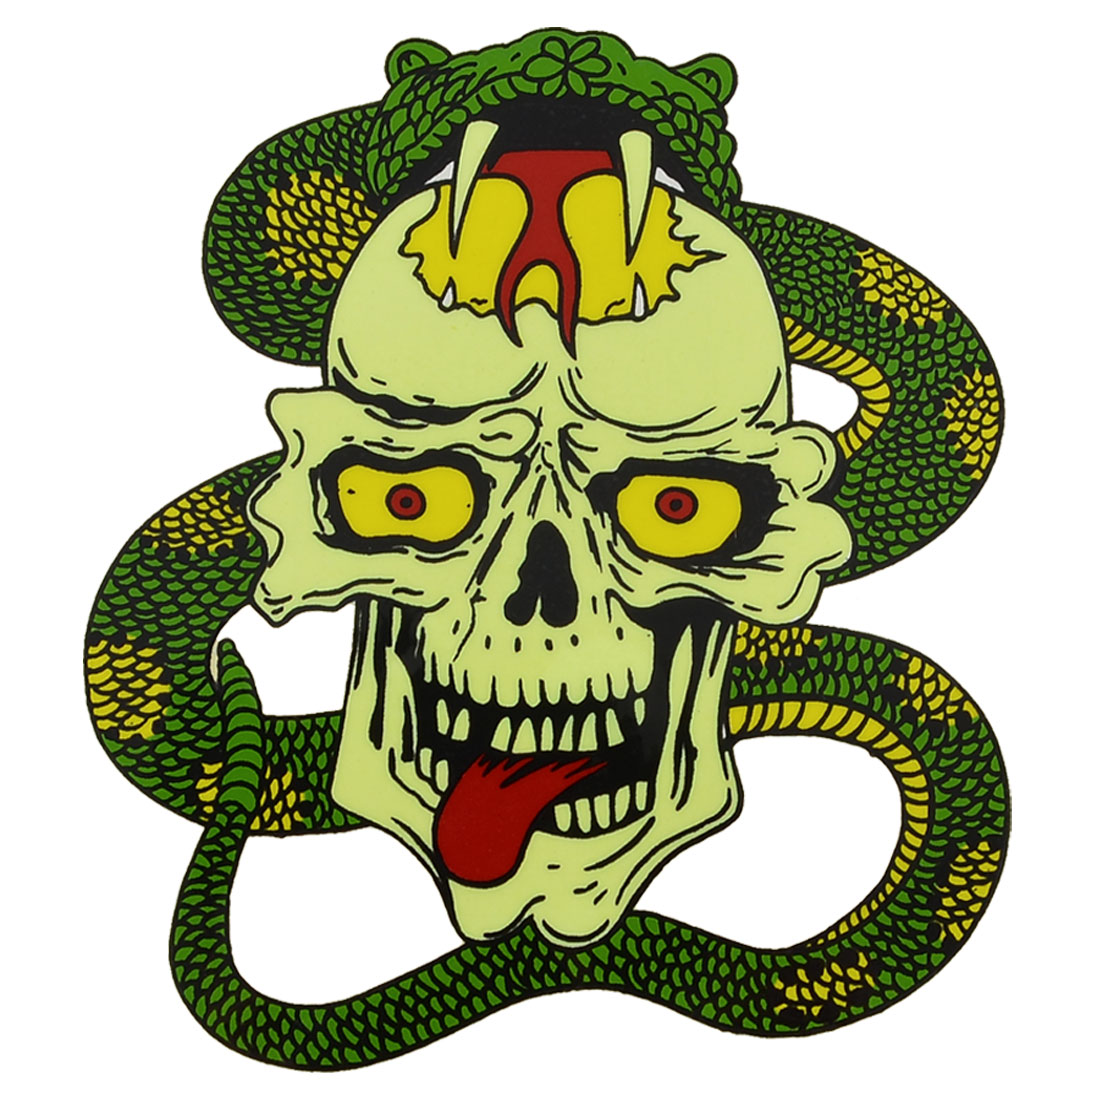 "Car Automobile Vivid Snake Skeleton Decal Sticker Decor Green Yellow 4.3""x3.5"""